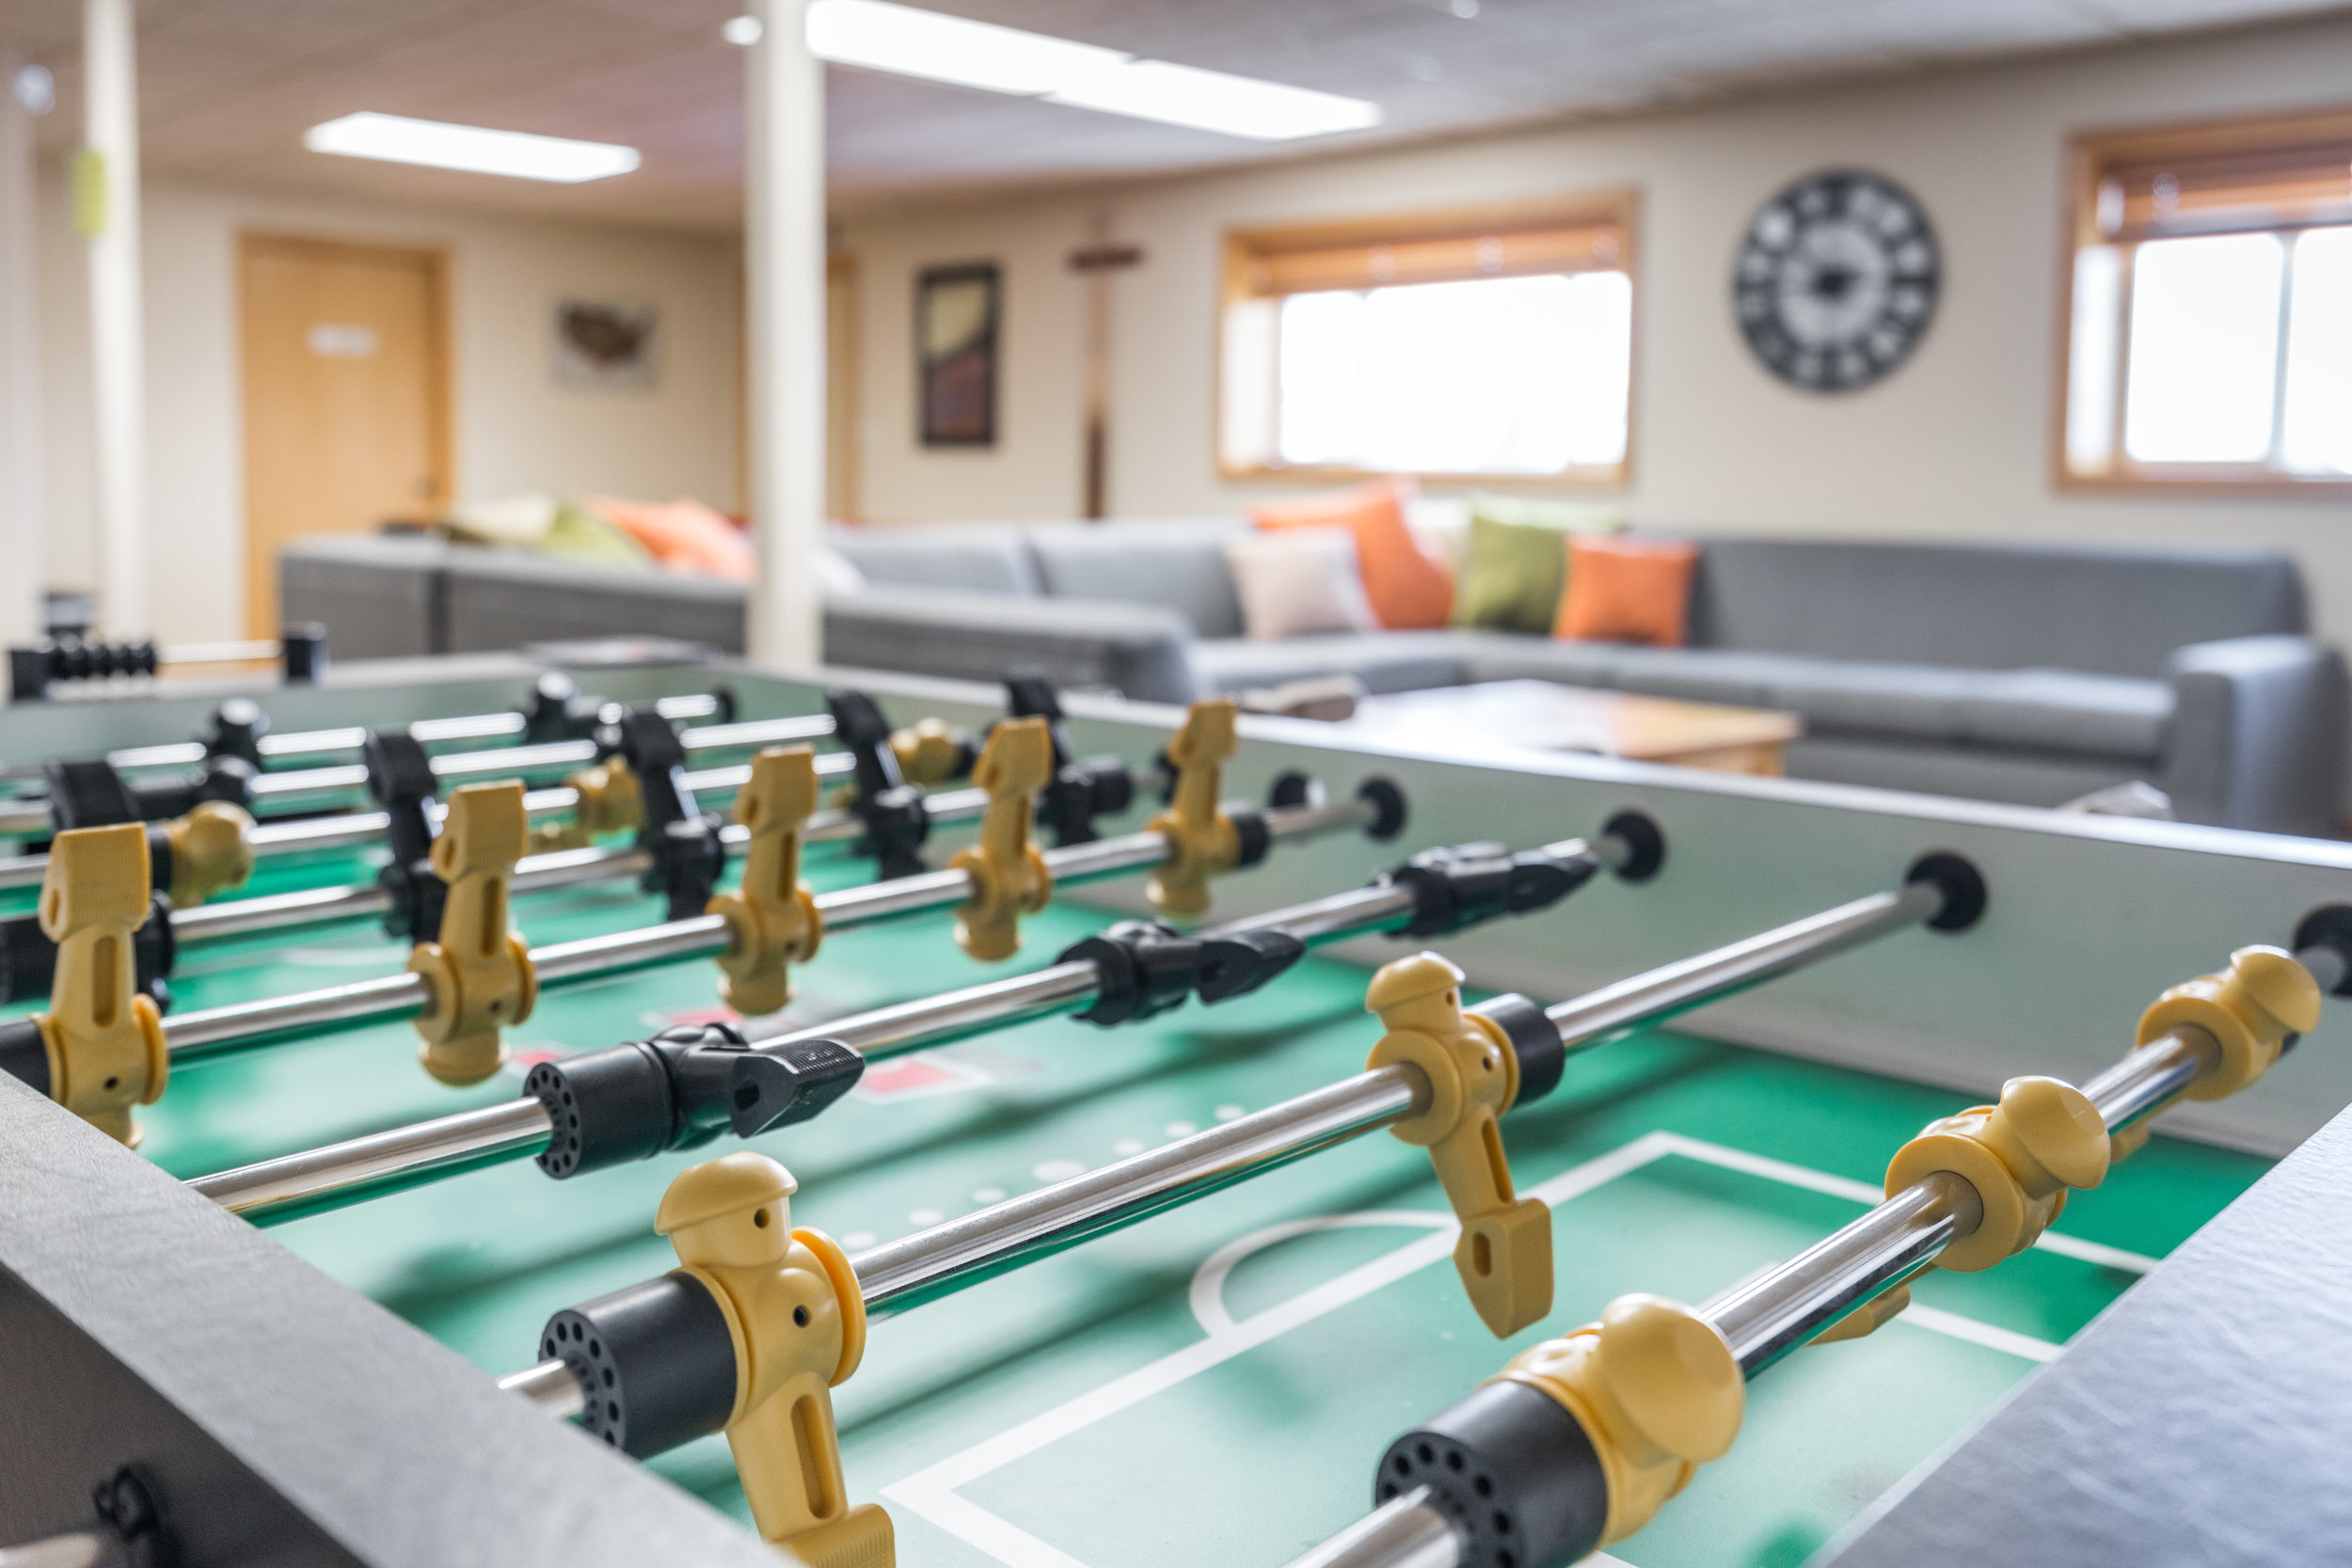 Maybe a competitive game of Foosball is more your style!